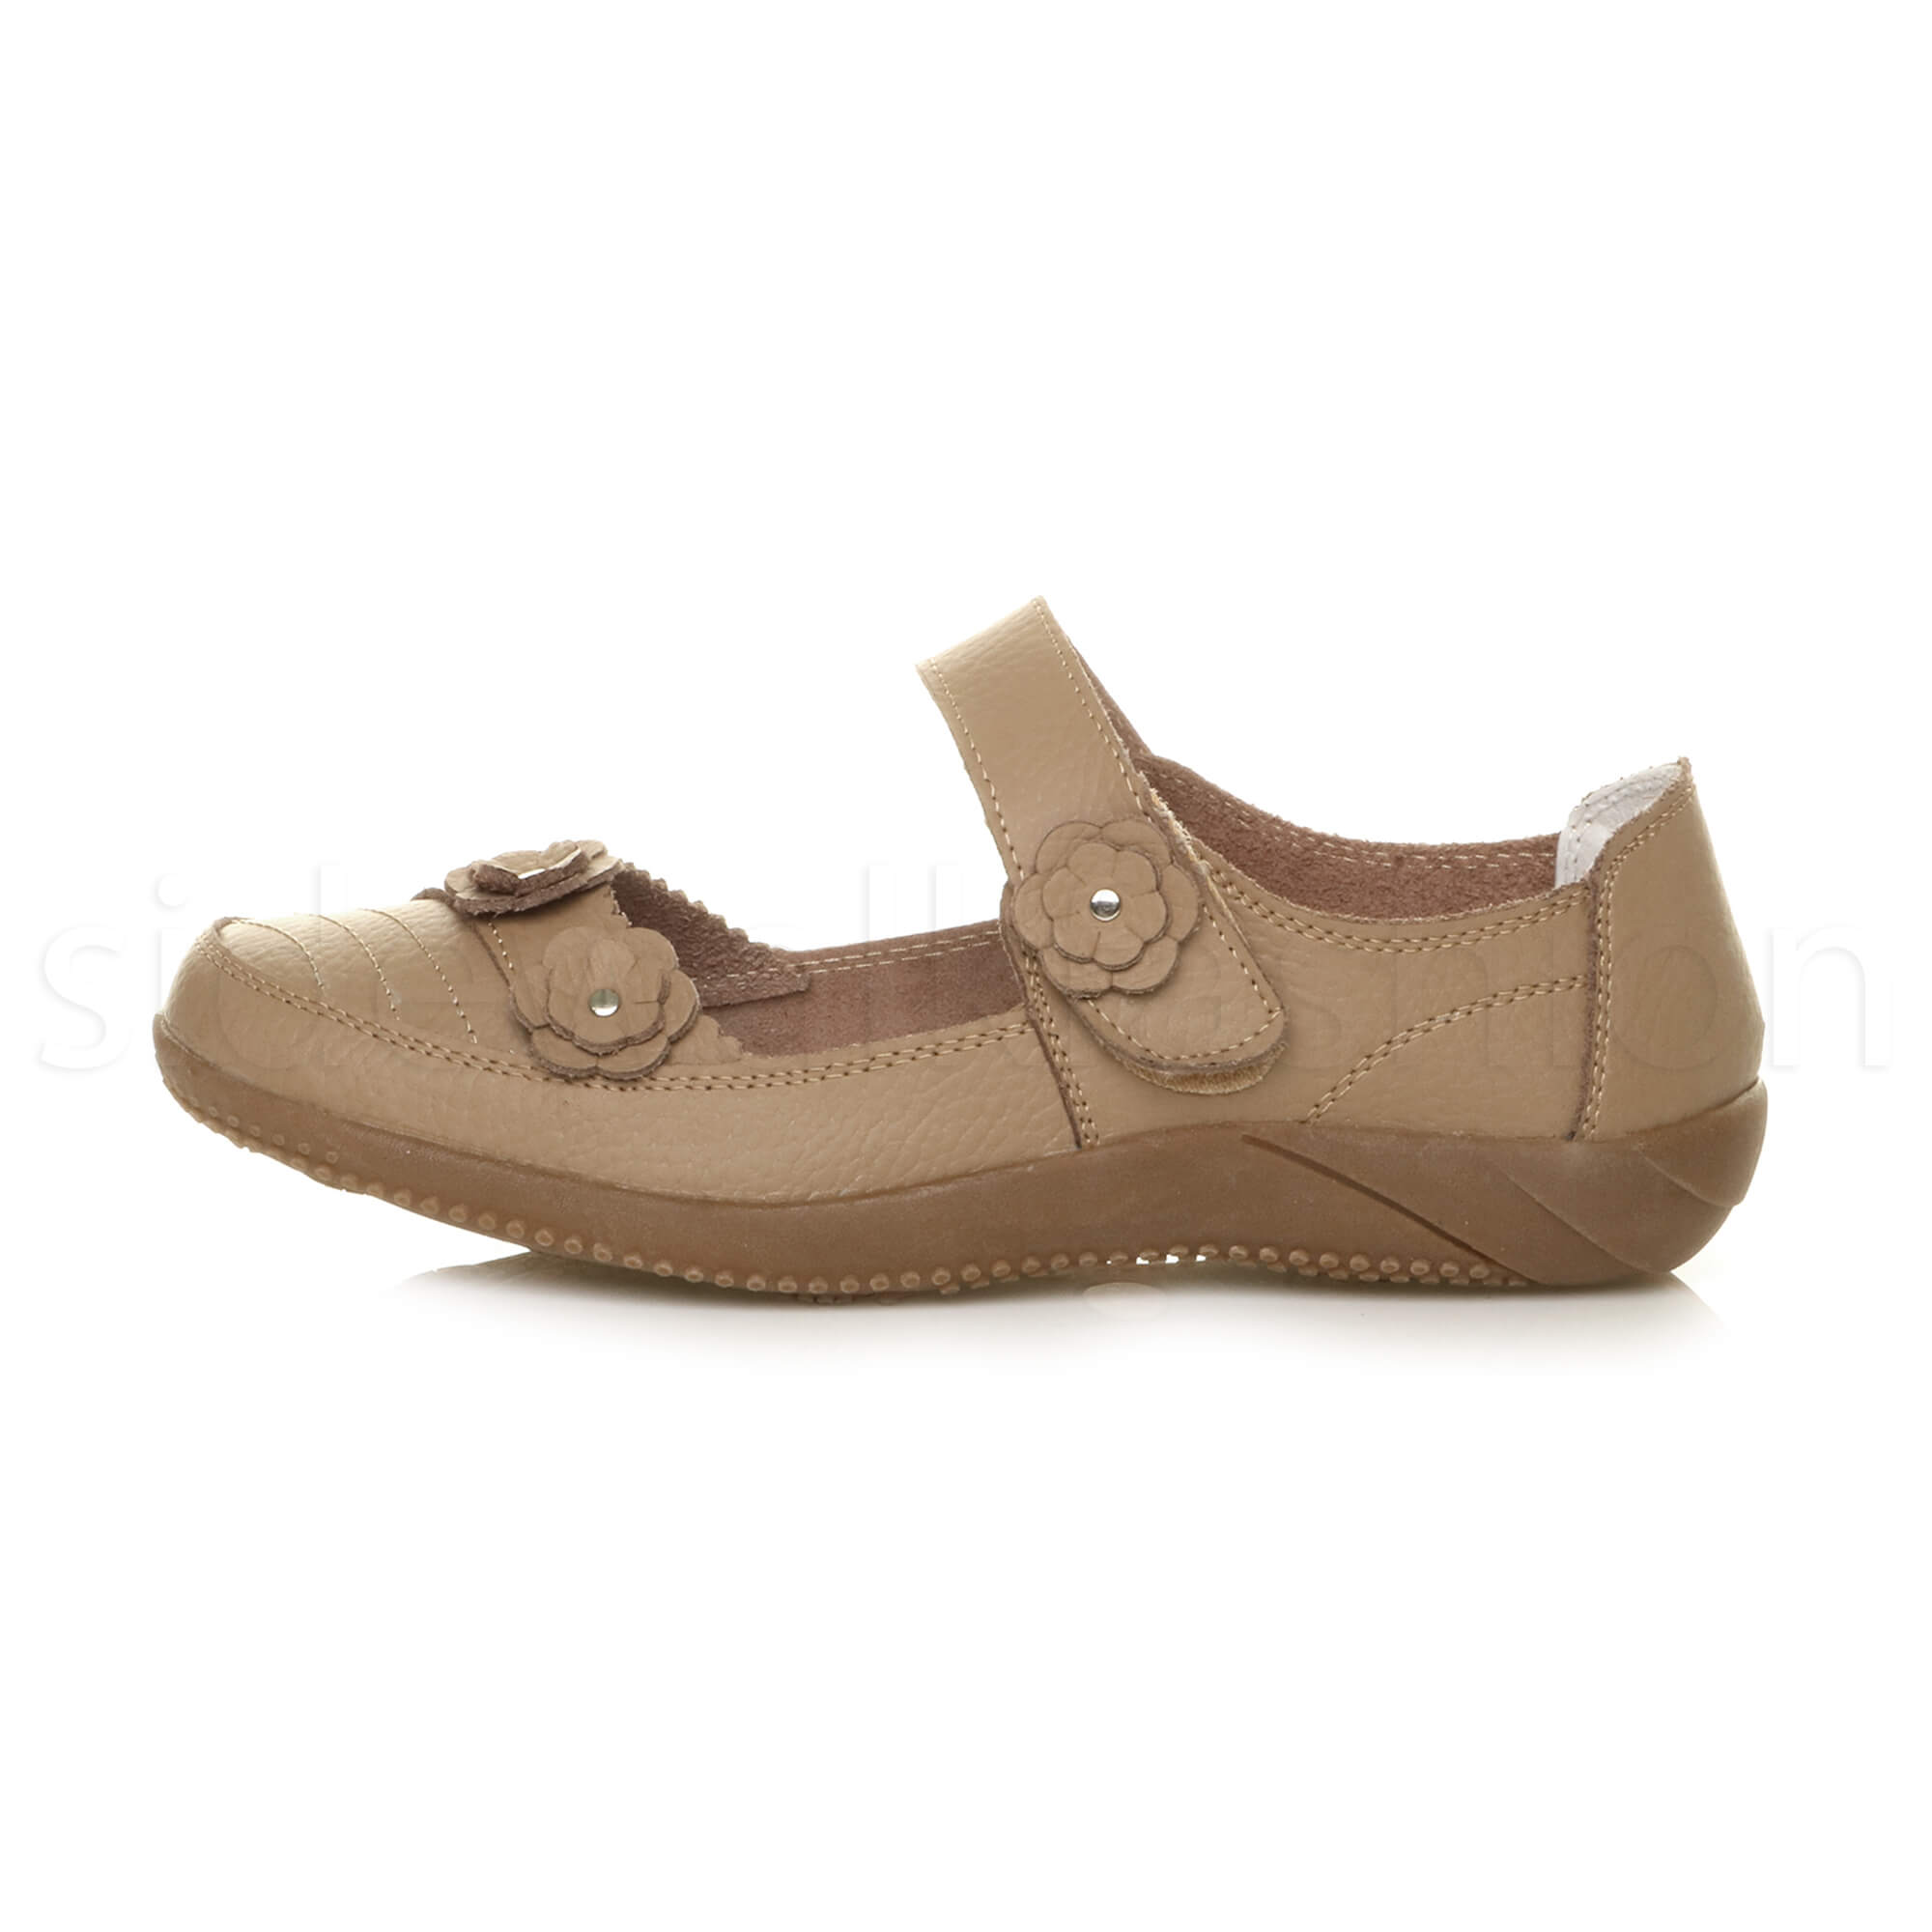 Womens-ladies-leather-comfort-walking-casual-sandals-mary-jane-strap-shoes-size thumbnail 3